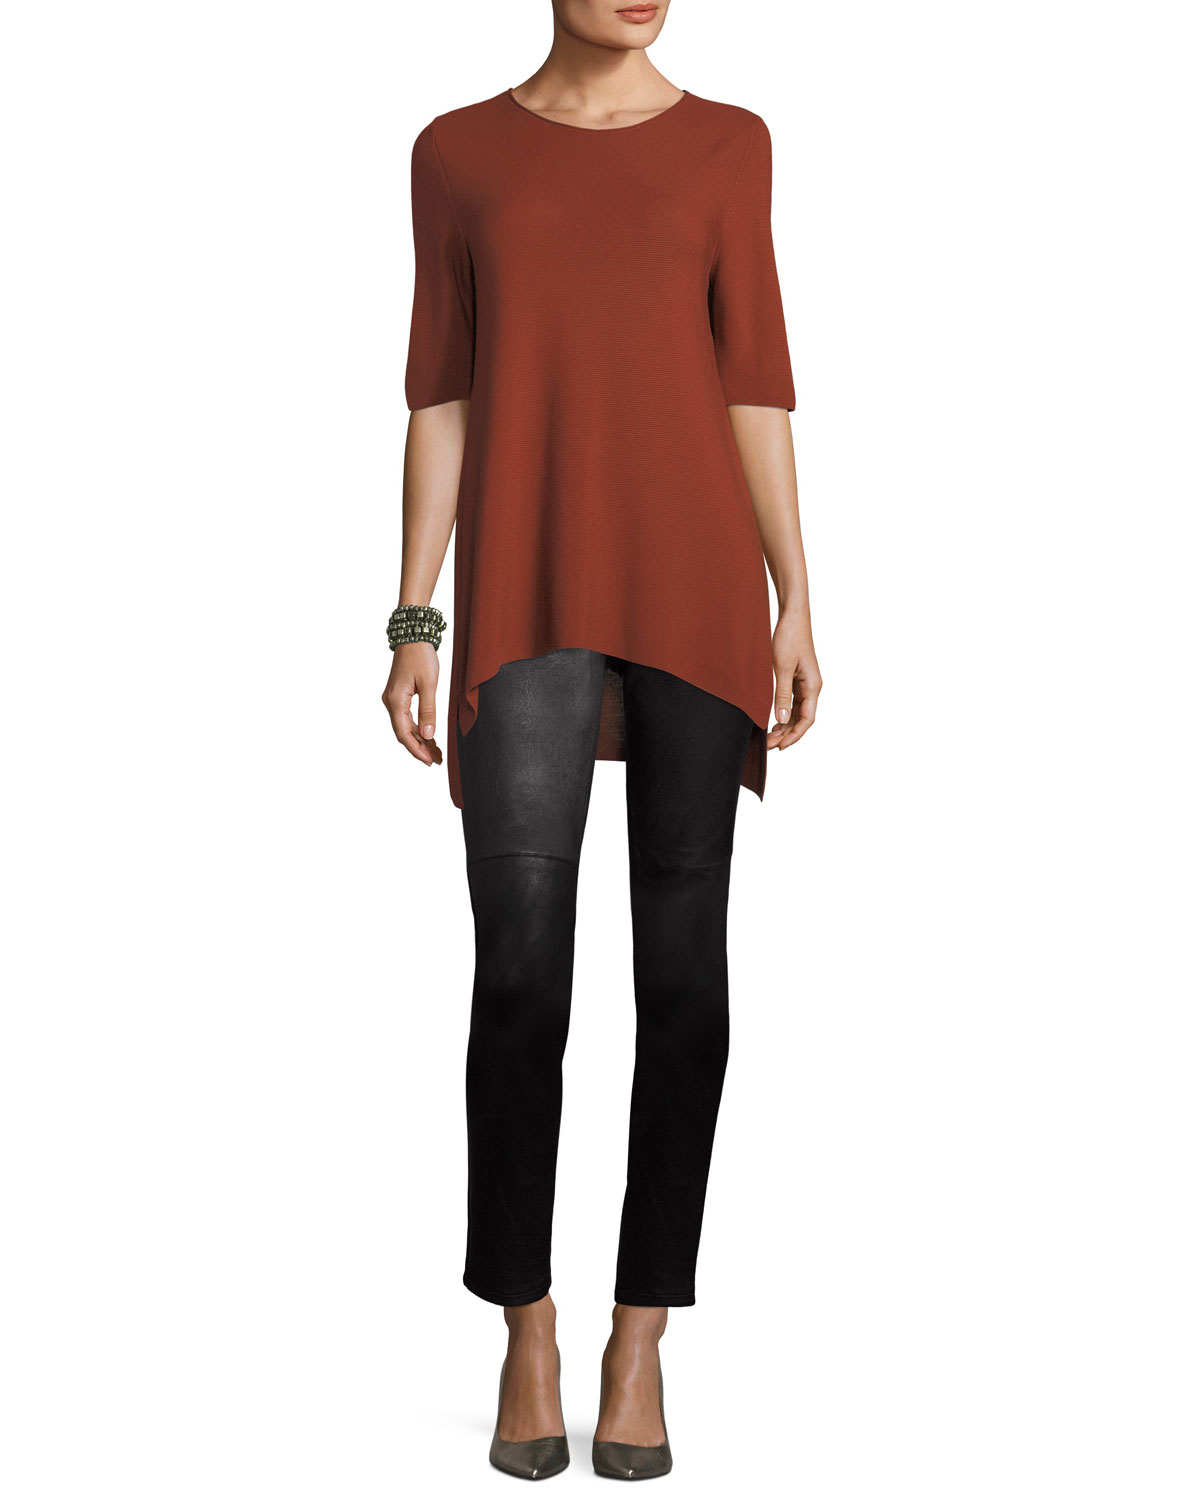 Half-Sleeve Tencel Links Sweater, Petite